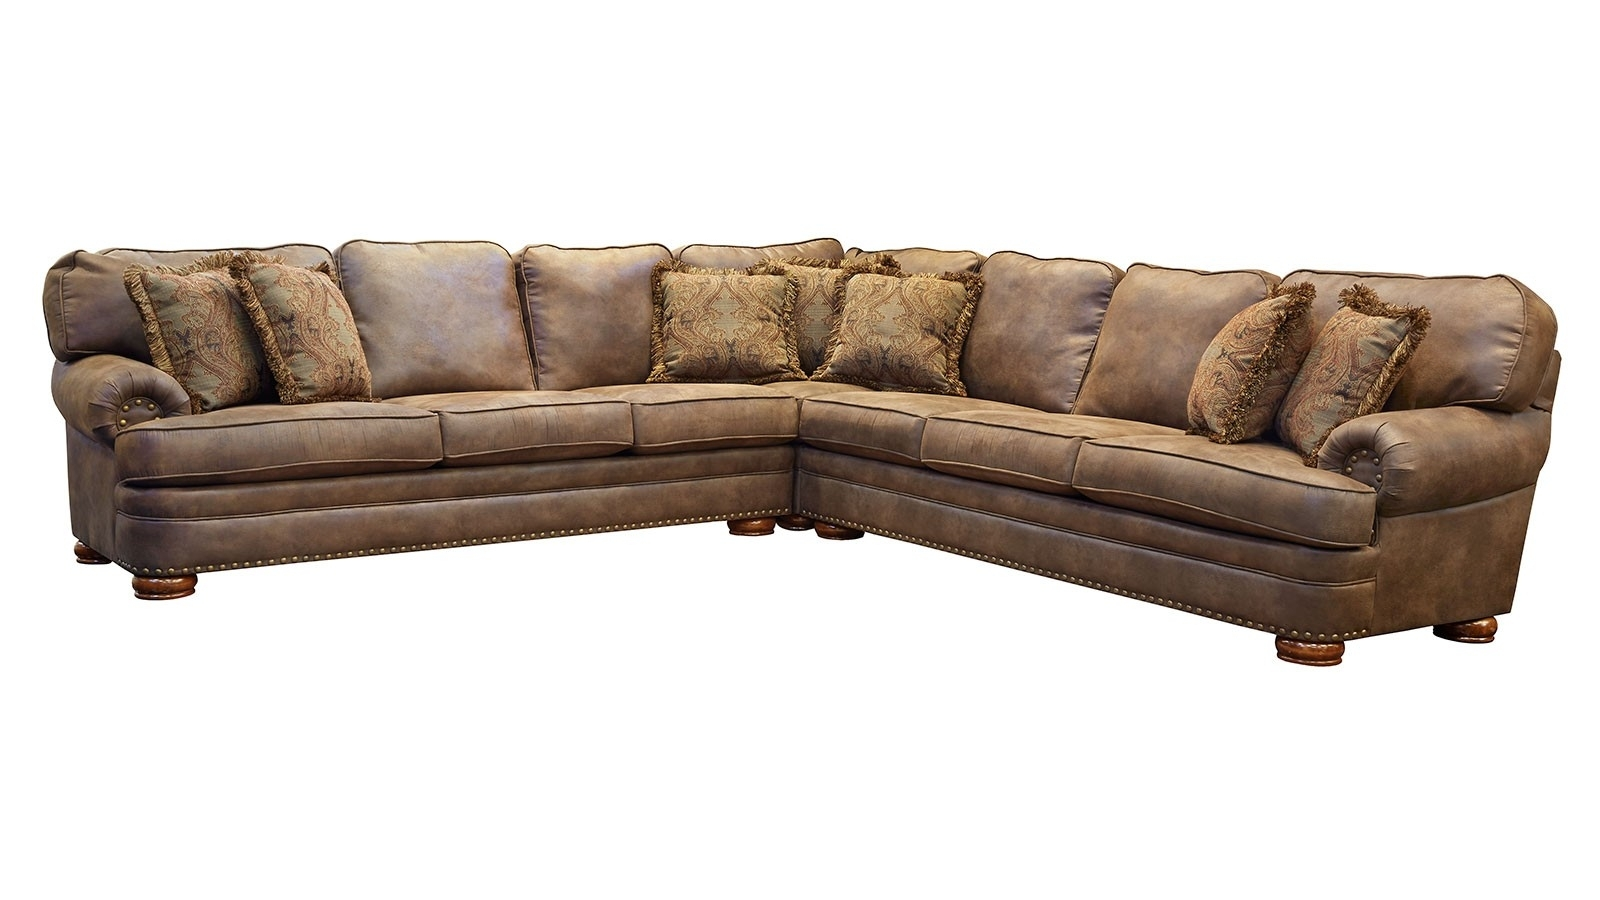 El Paso Sectional | Gallery Furniture In El Paso Sectional Sofas (Photo 1 of 10)